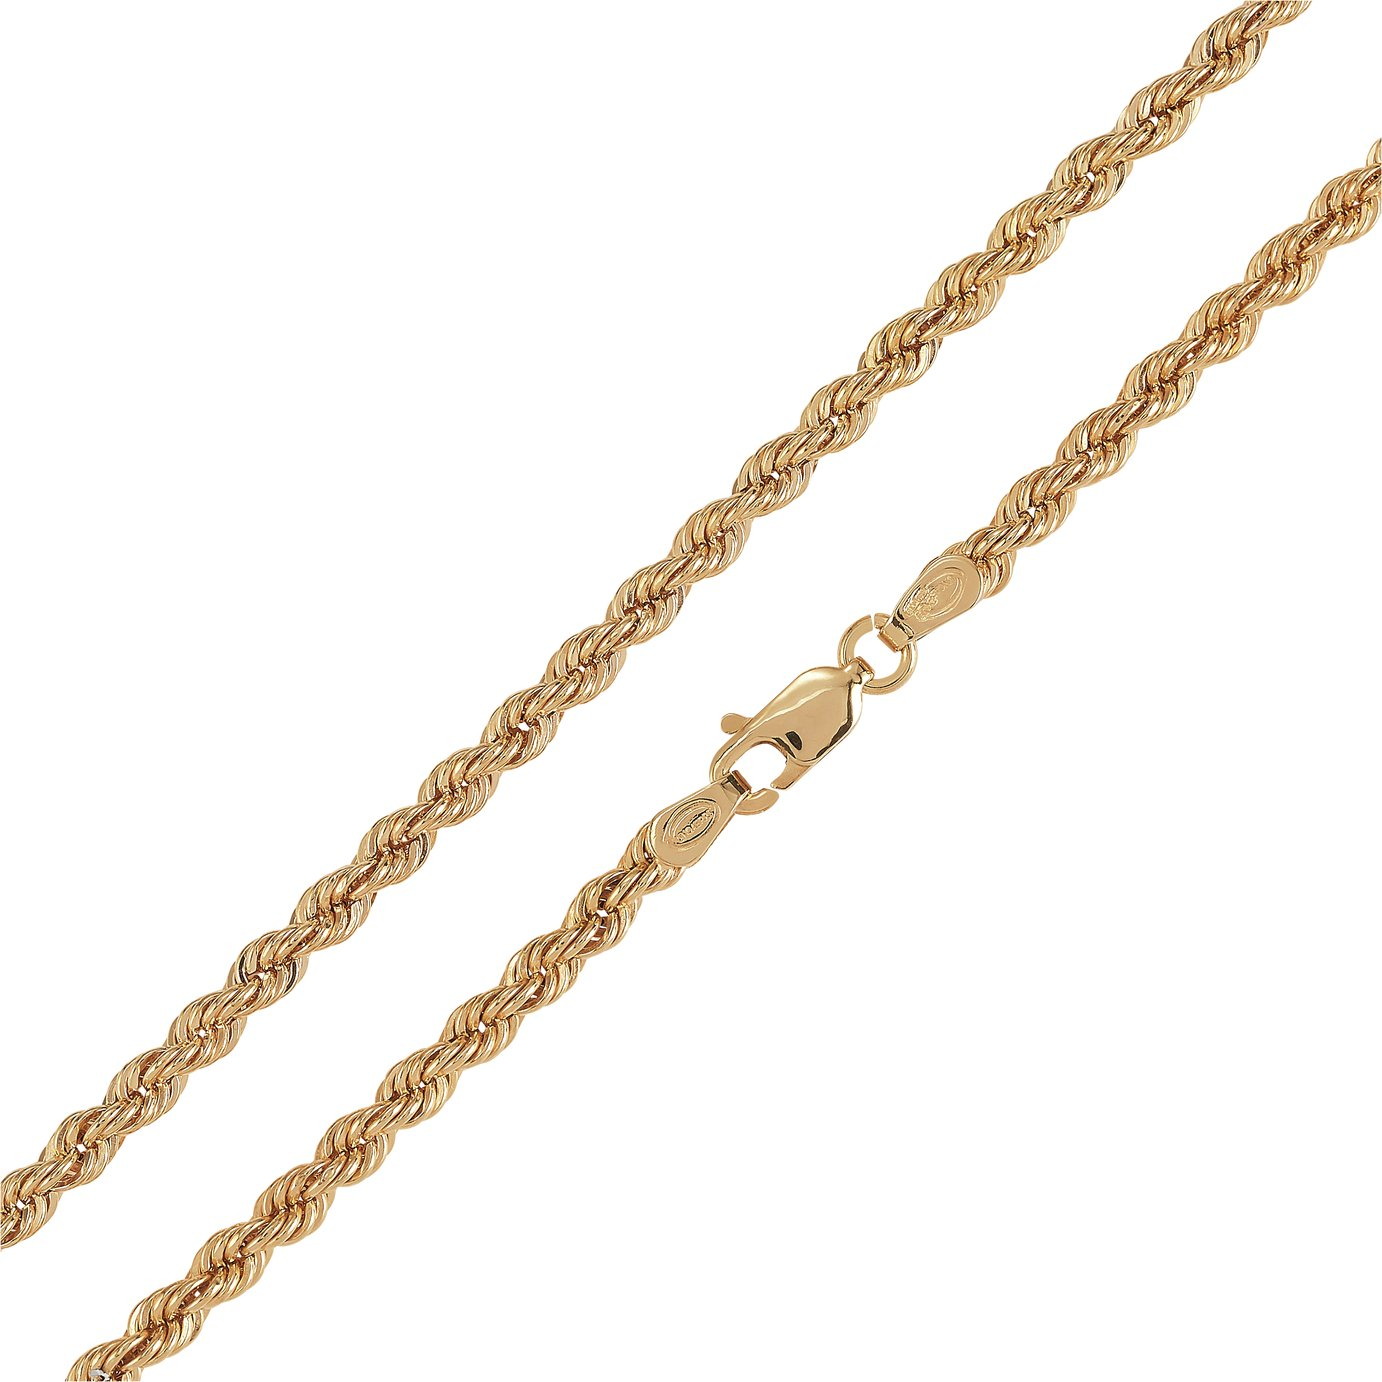 Revere 9ct Gold Hollow Rope 18 Inch Chain